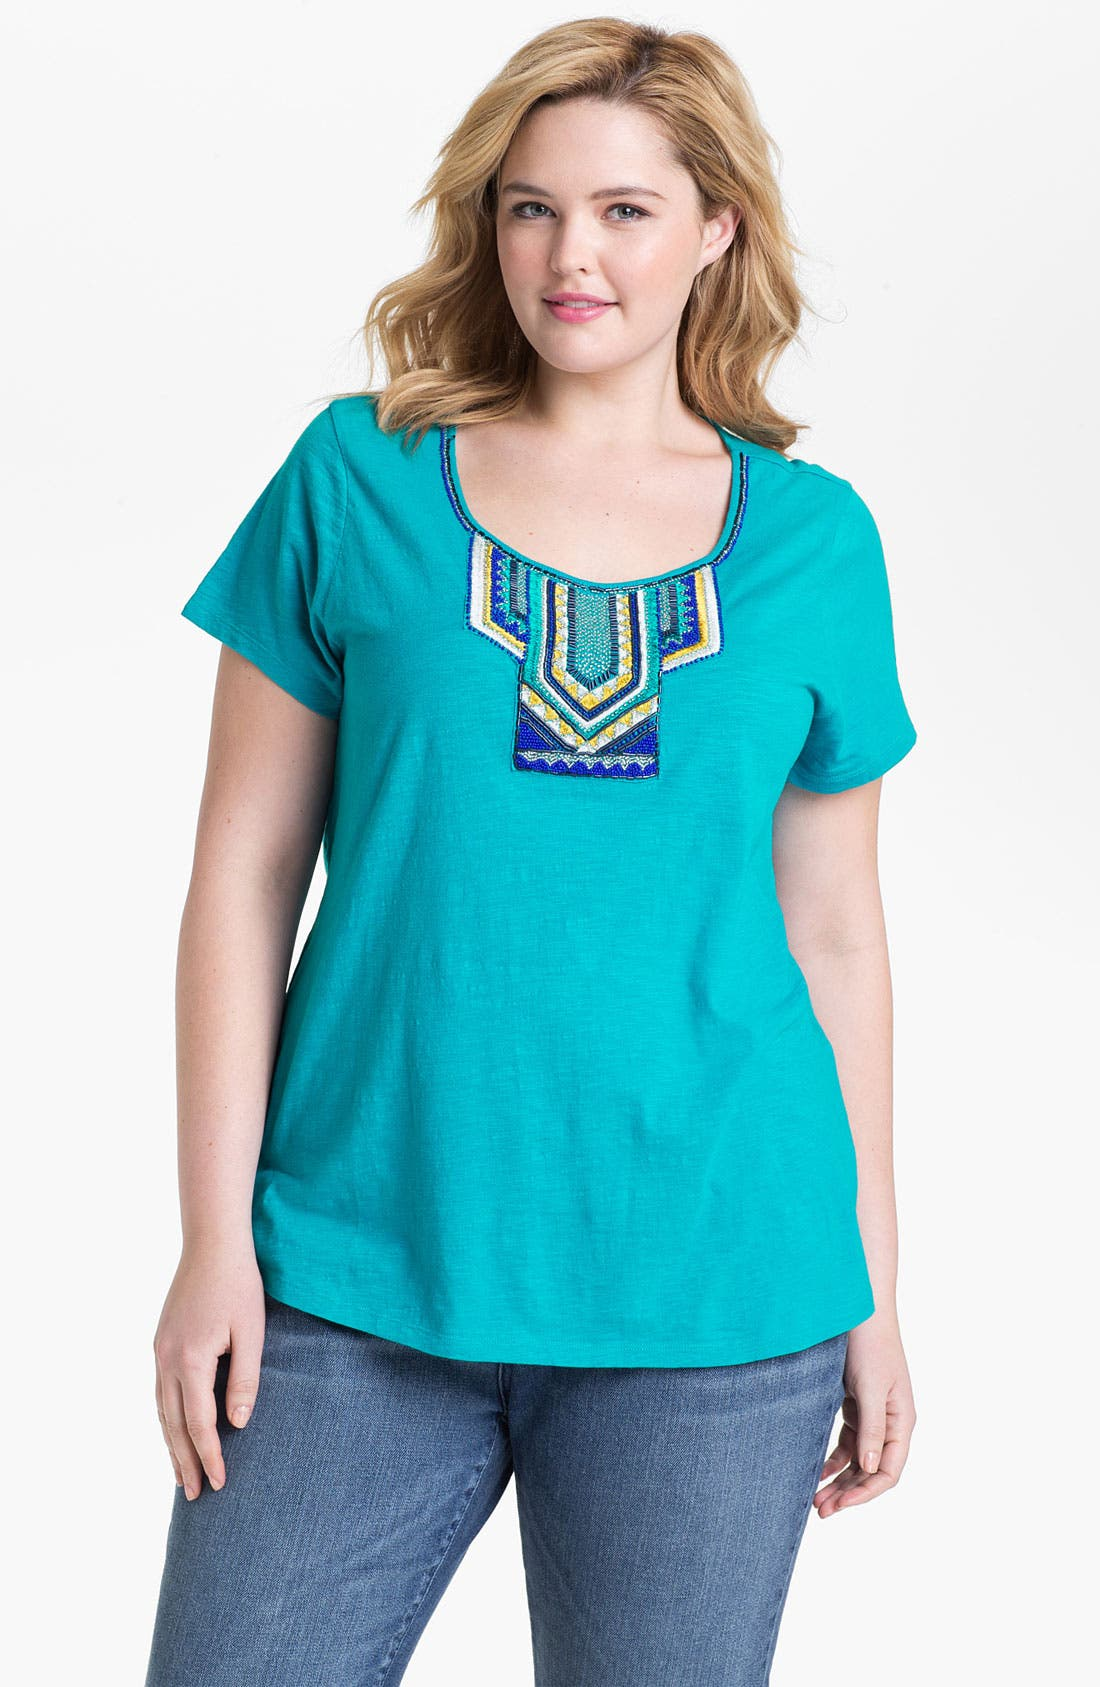 Alternate Image 1 Selected - Lucky Brand 'Adrianna' Embellished Cotton Tee (Plus Size)